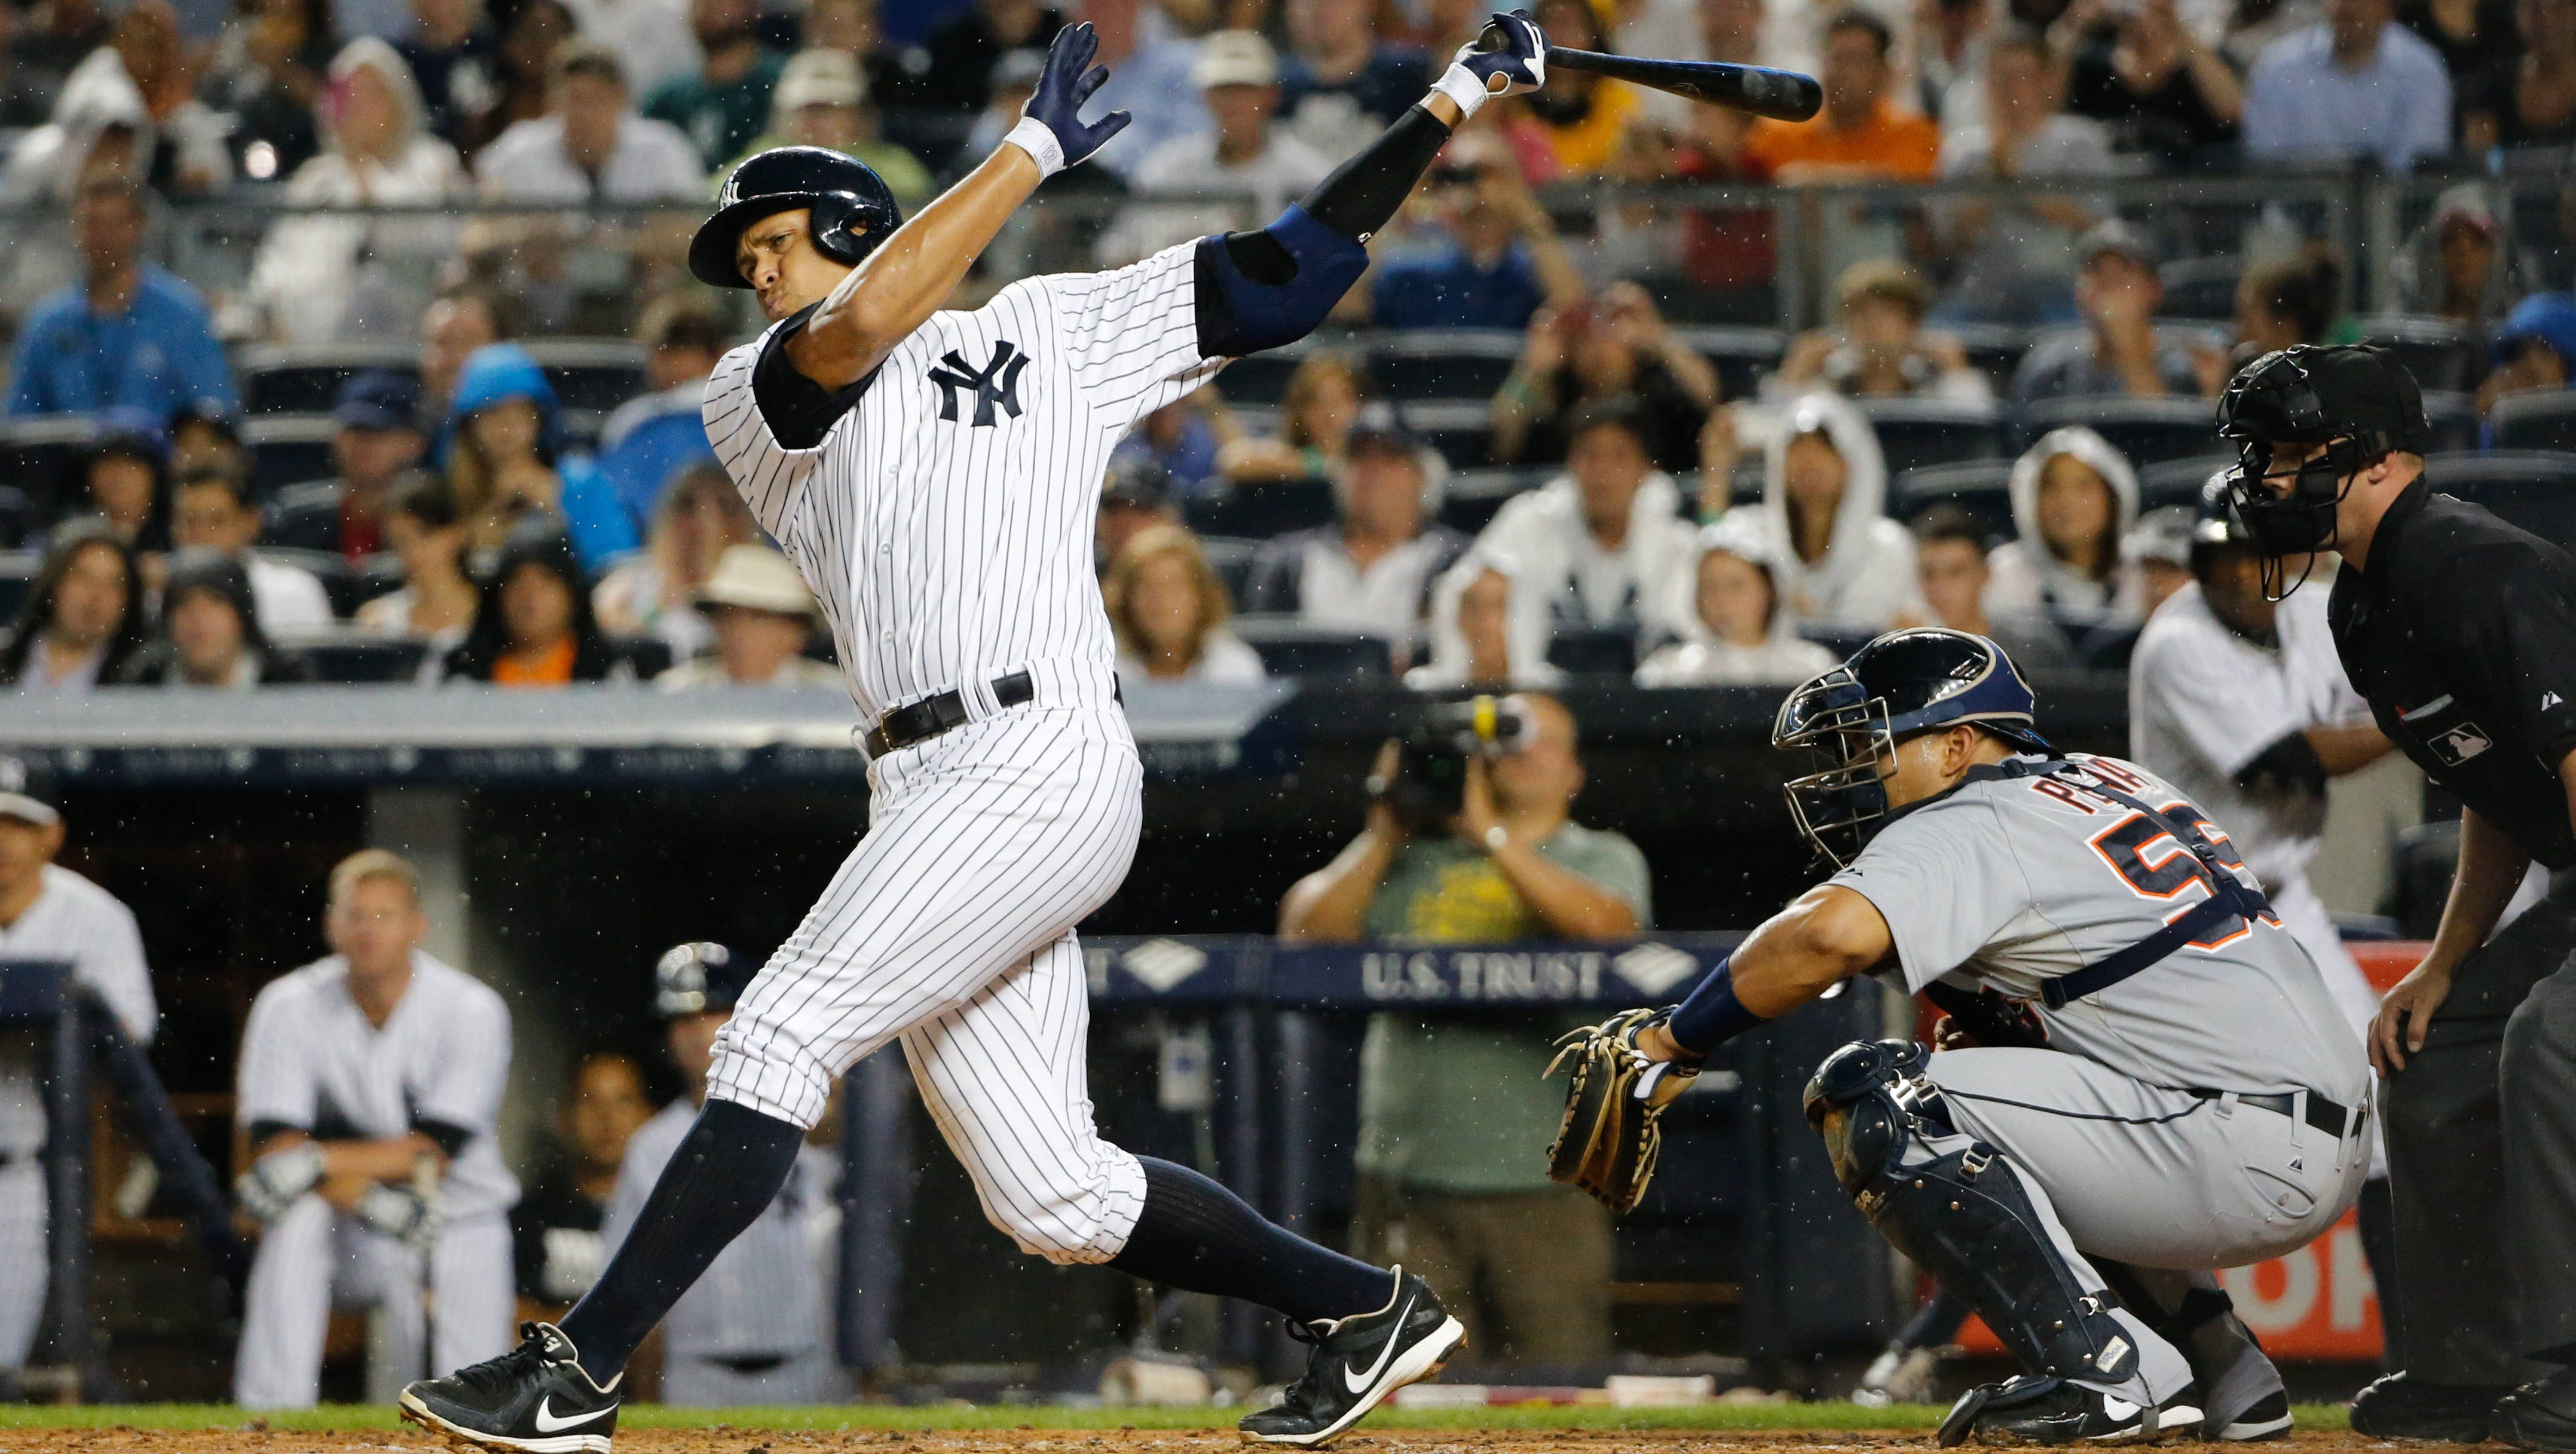 New York Yankees third baseman Alex Rodriguez strikes out swinging during the first inning against the Detroit Tigers at Yankee Stadium.